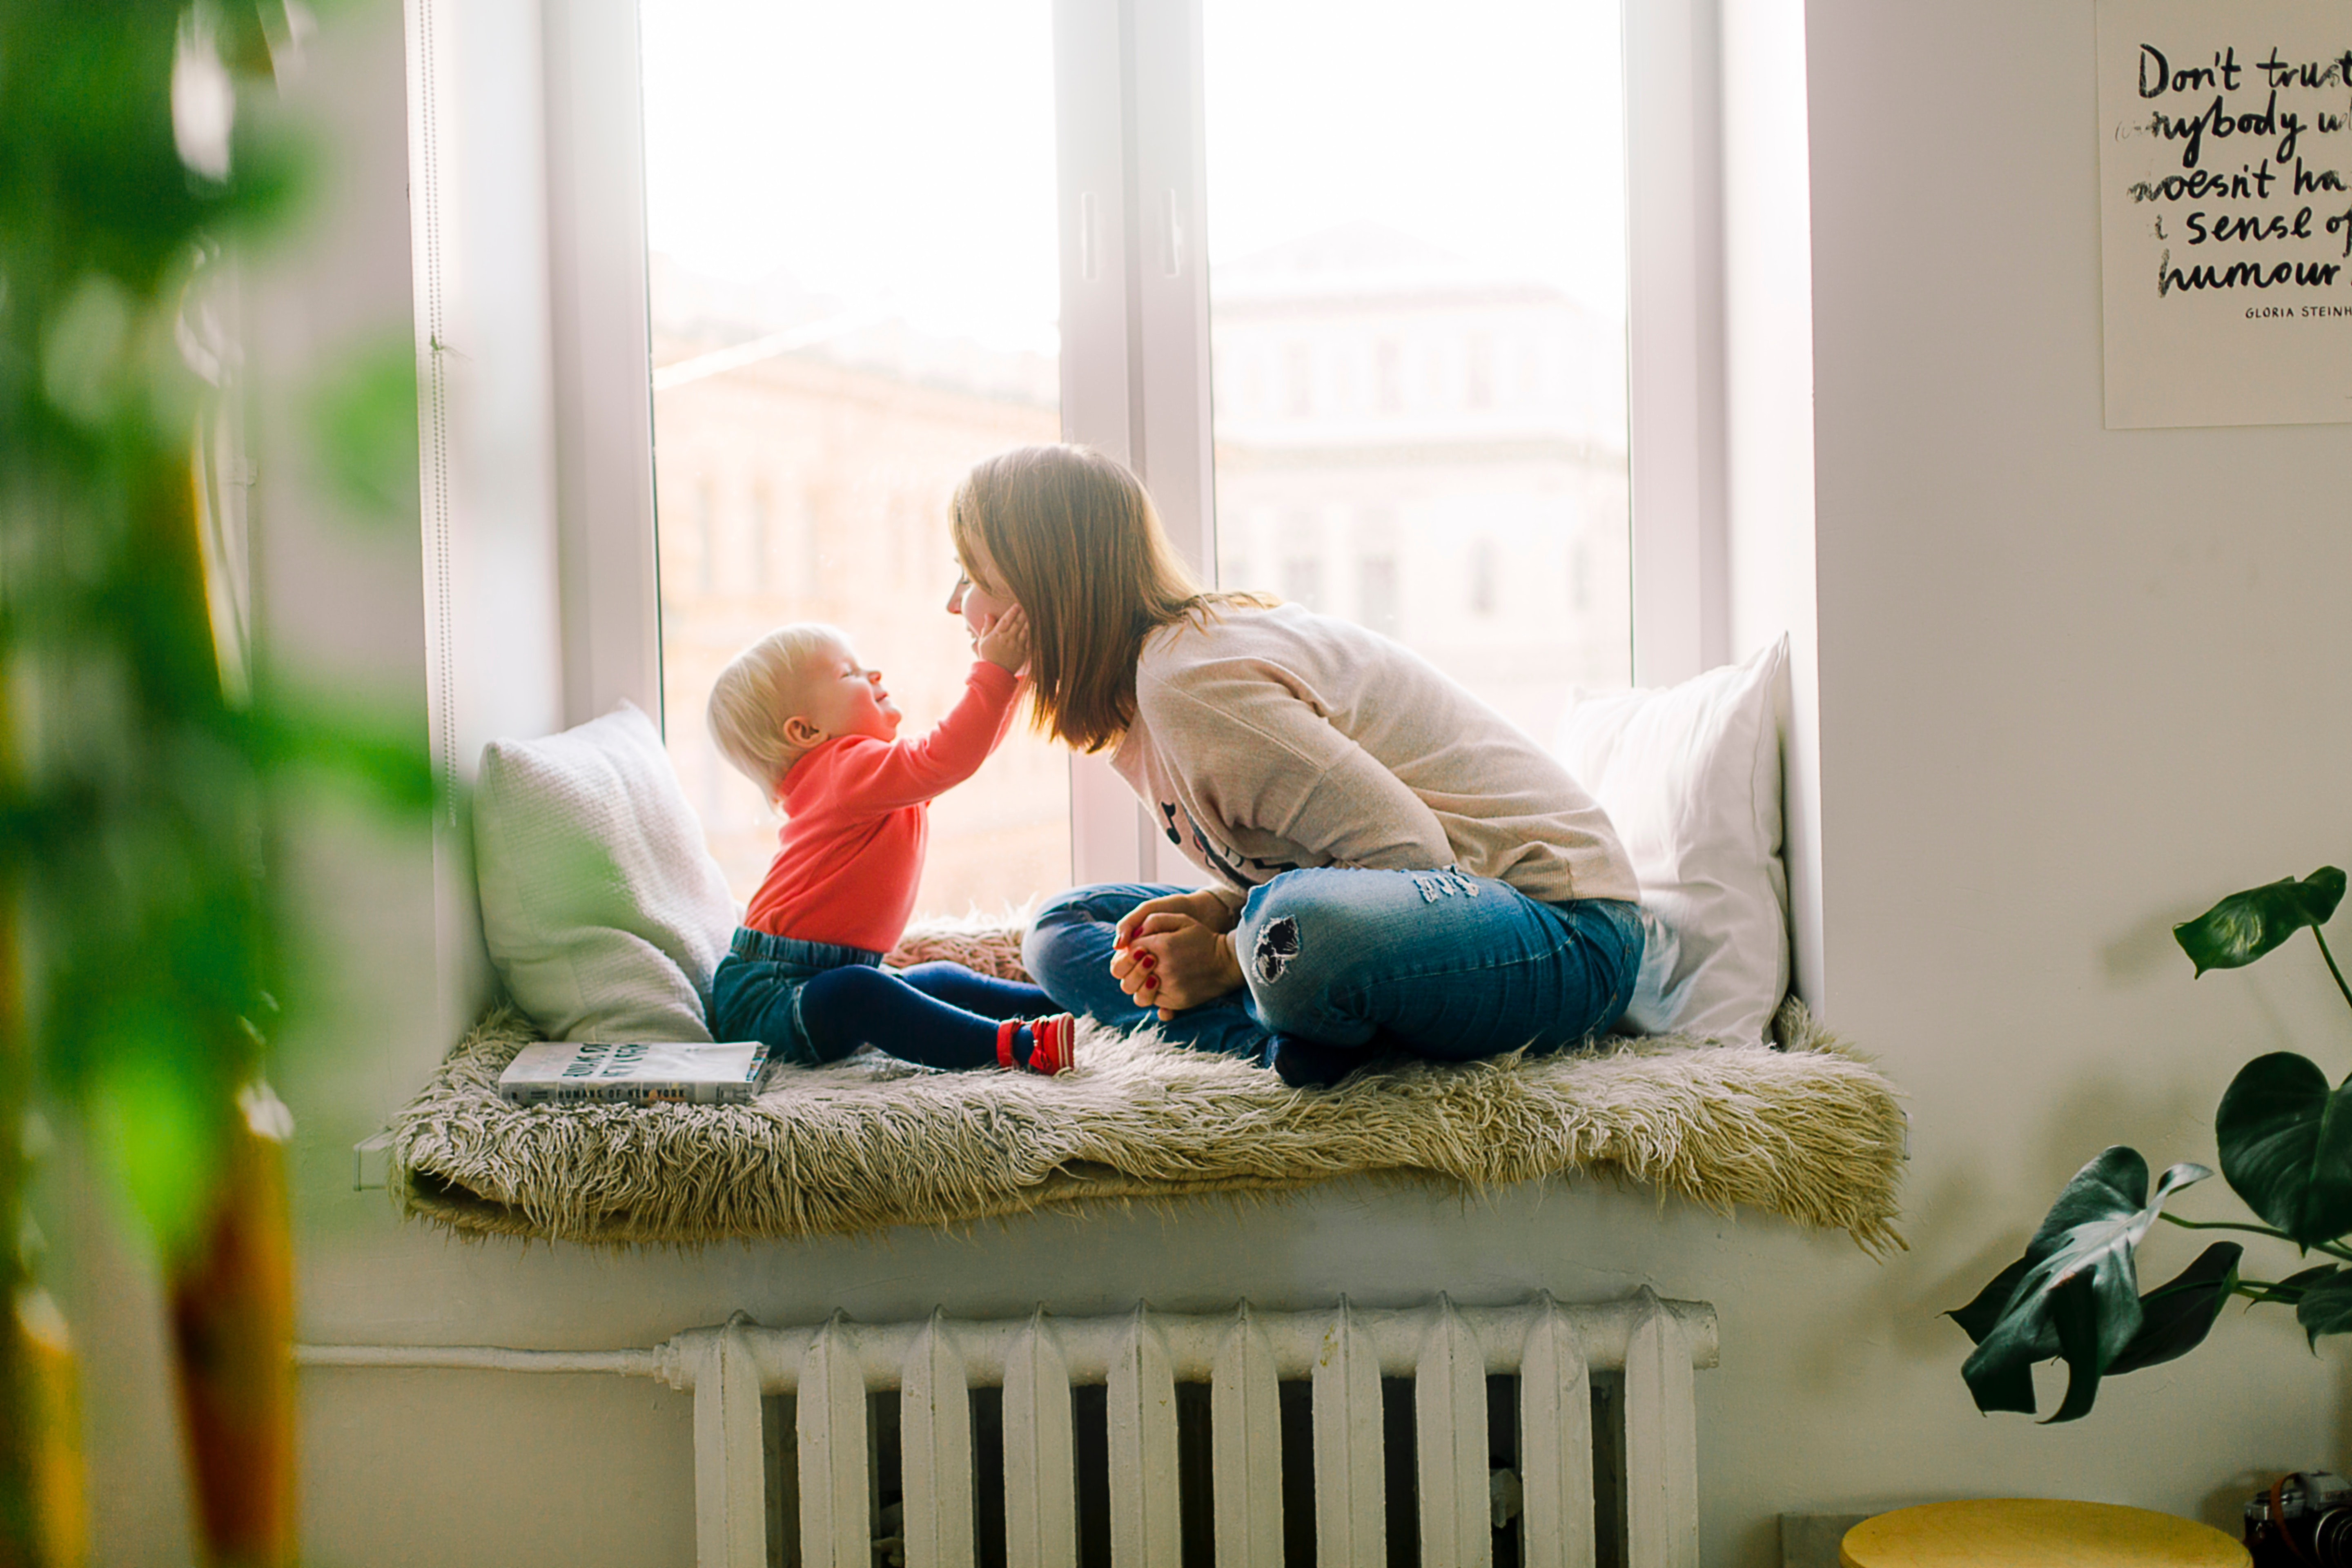 Playing with kid in window